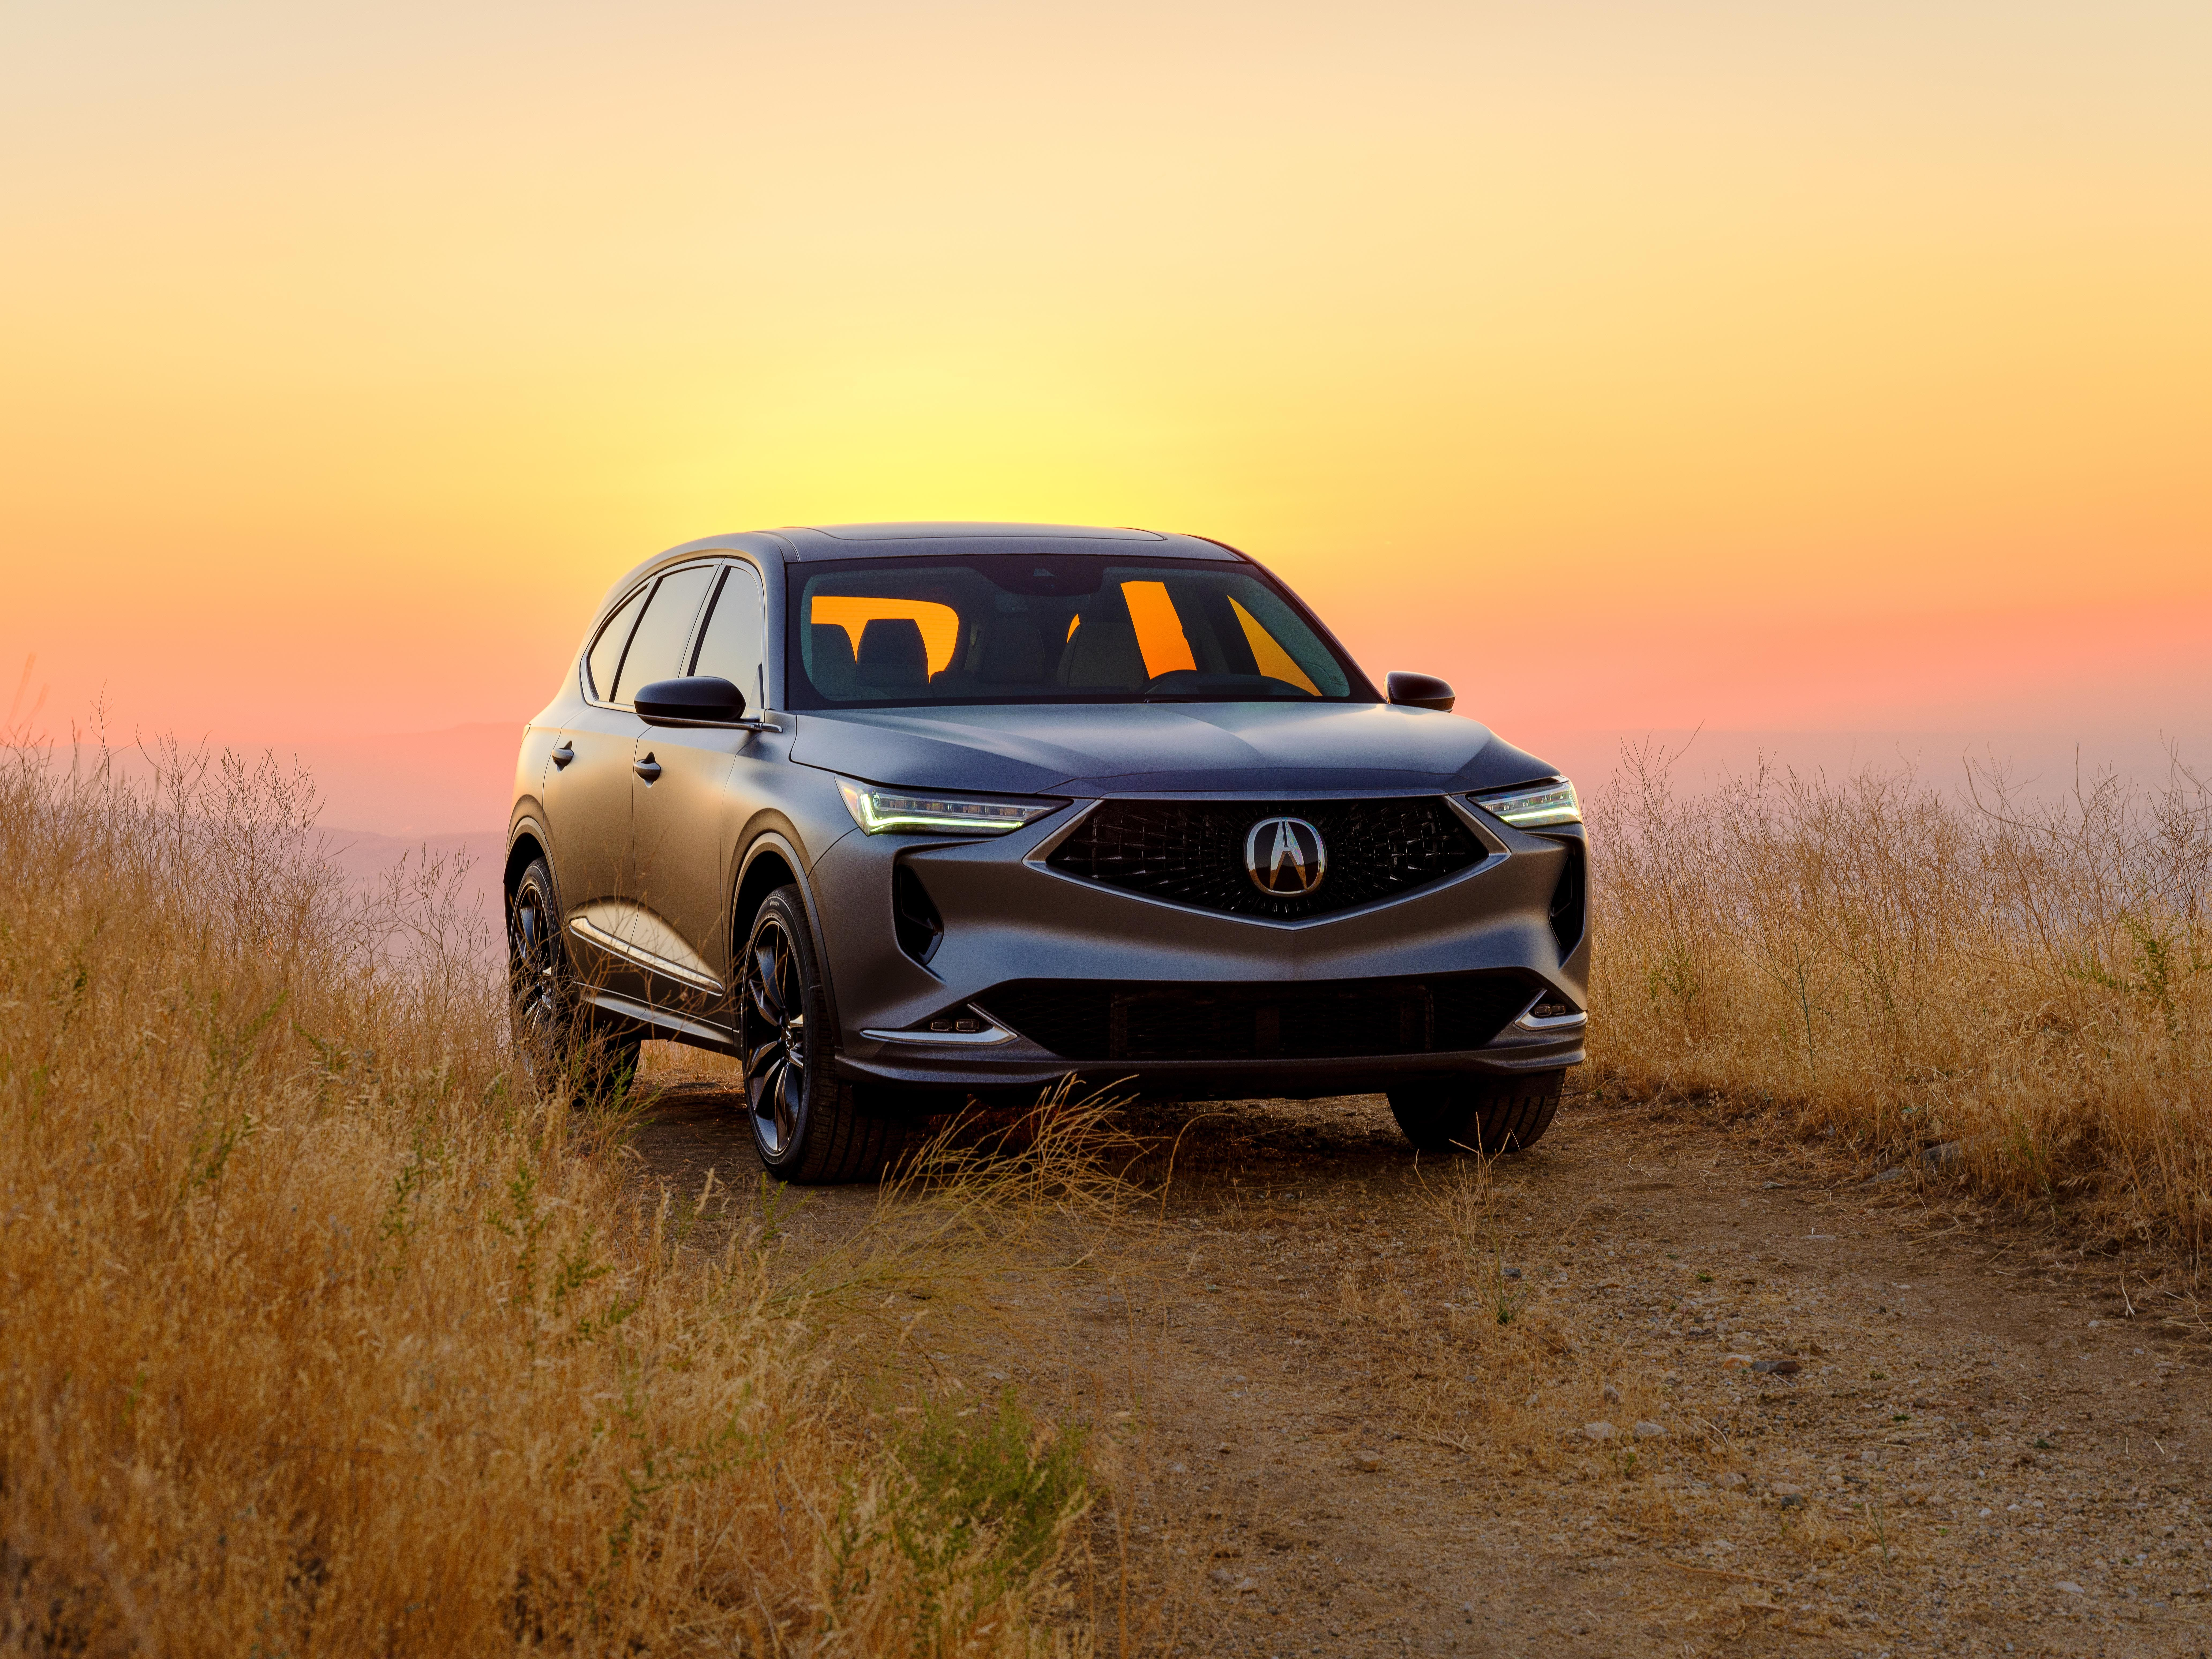 5 Acura MDX: What We Know So Far